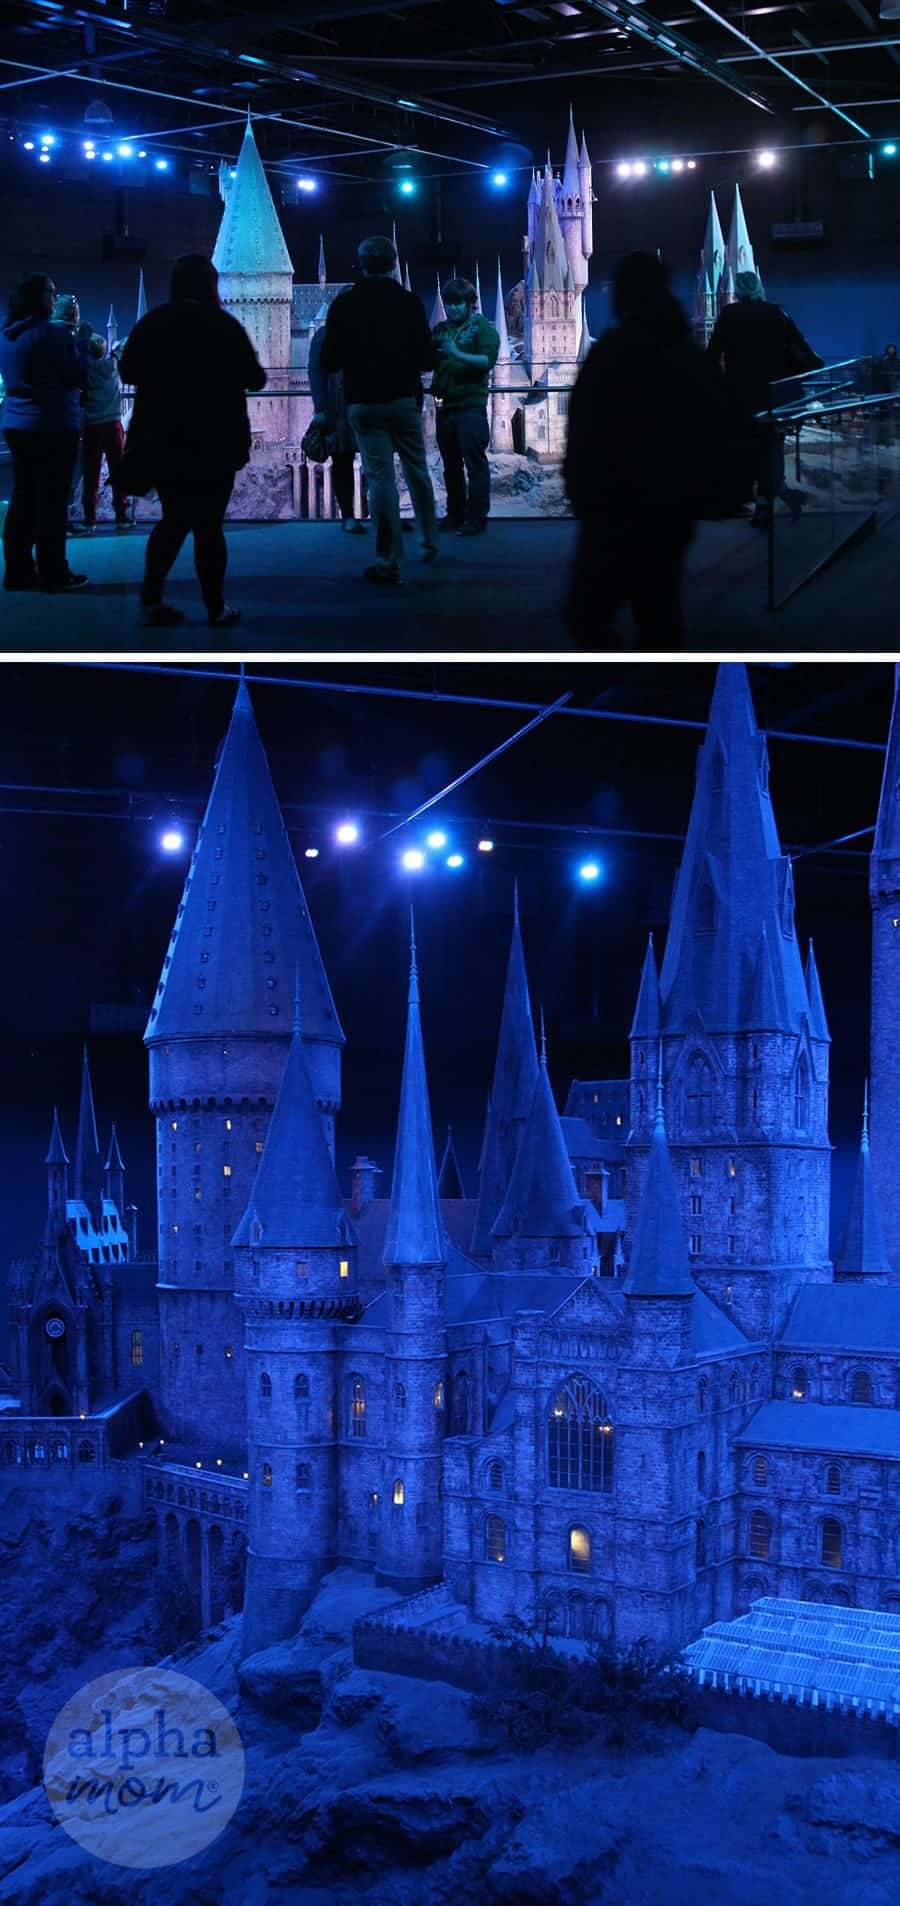 Studio Tour of the Making of Harry Potter Review (Hogwarts Castle) by Brenda Ponnay for Alphamom.com